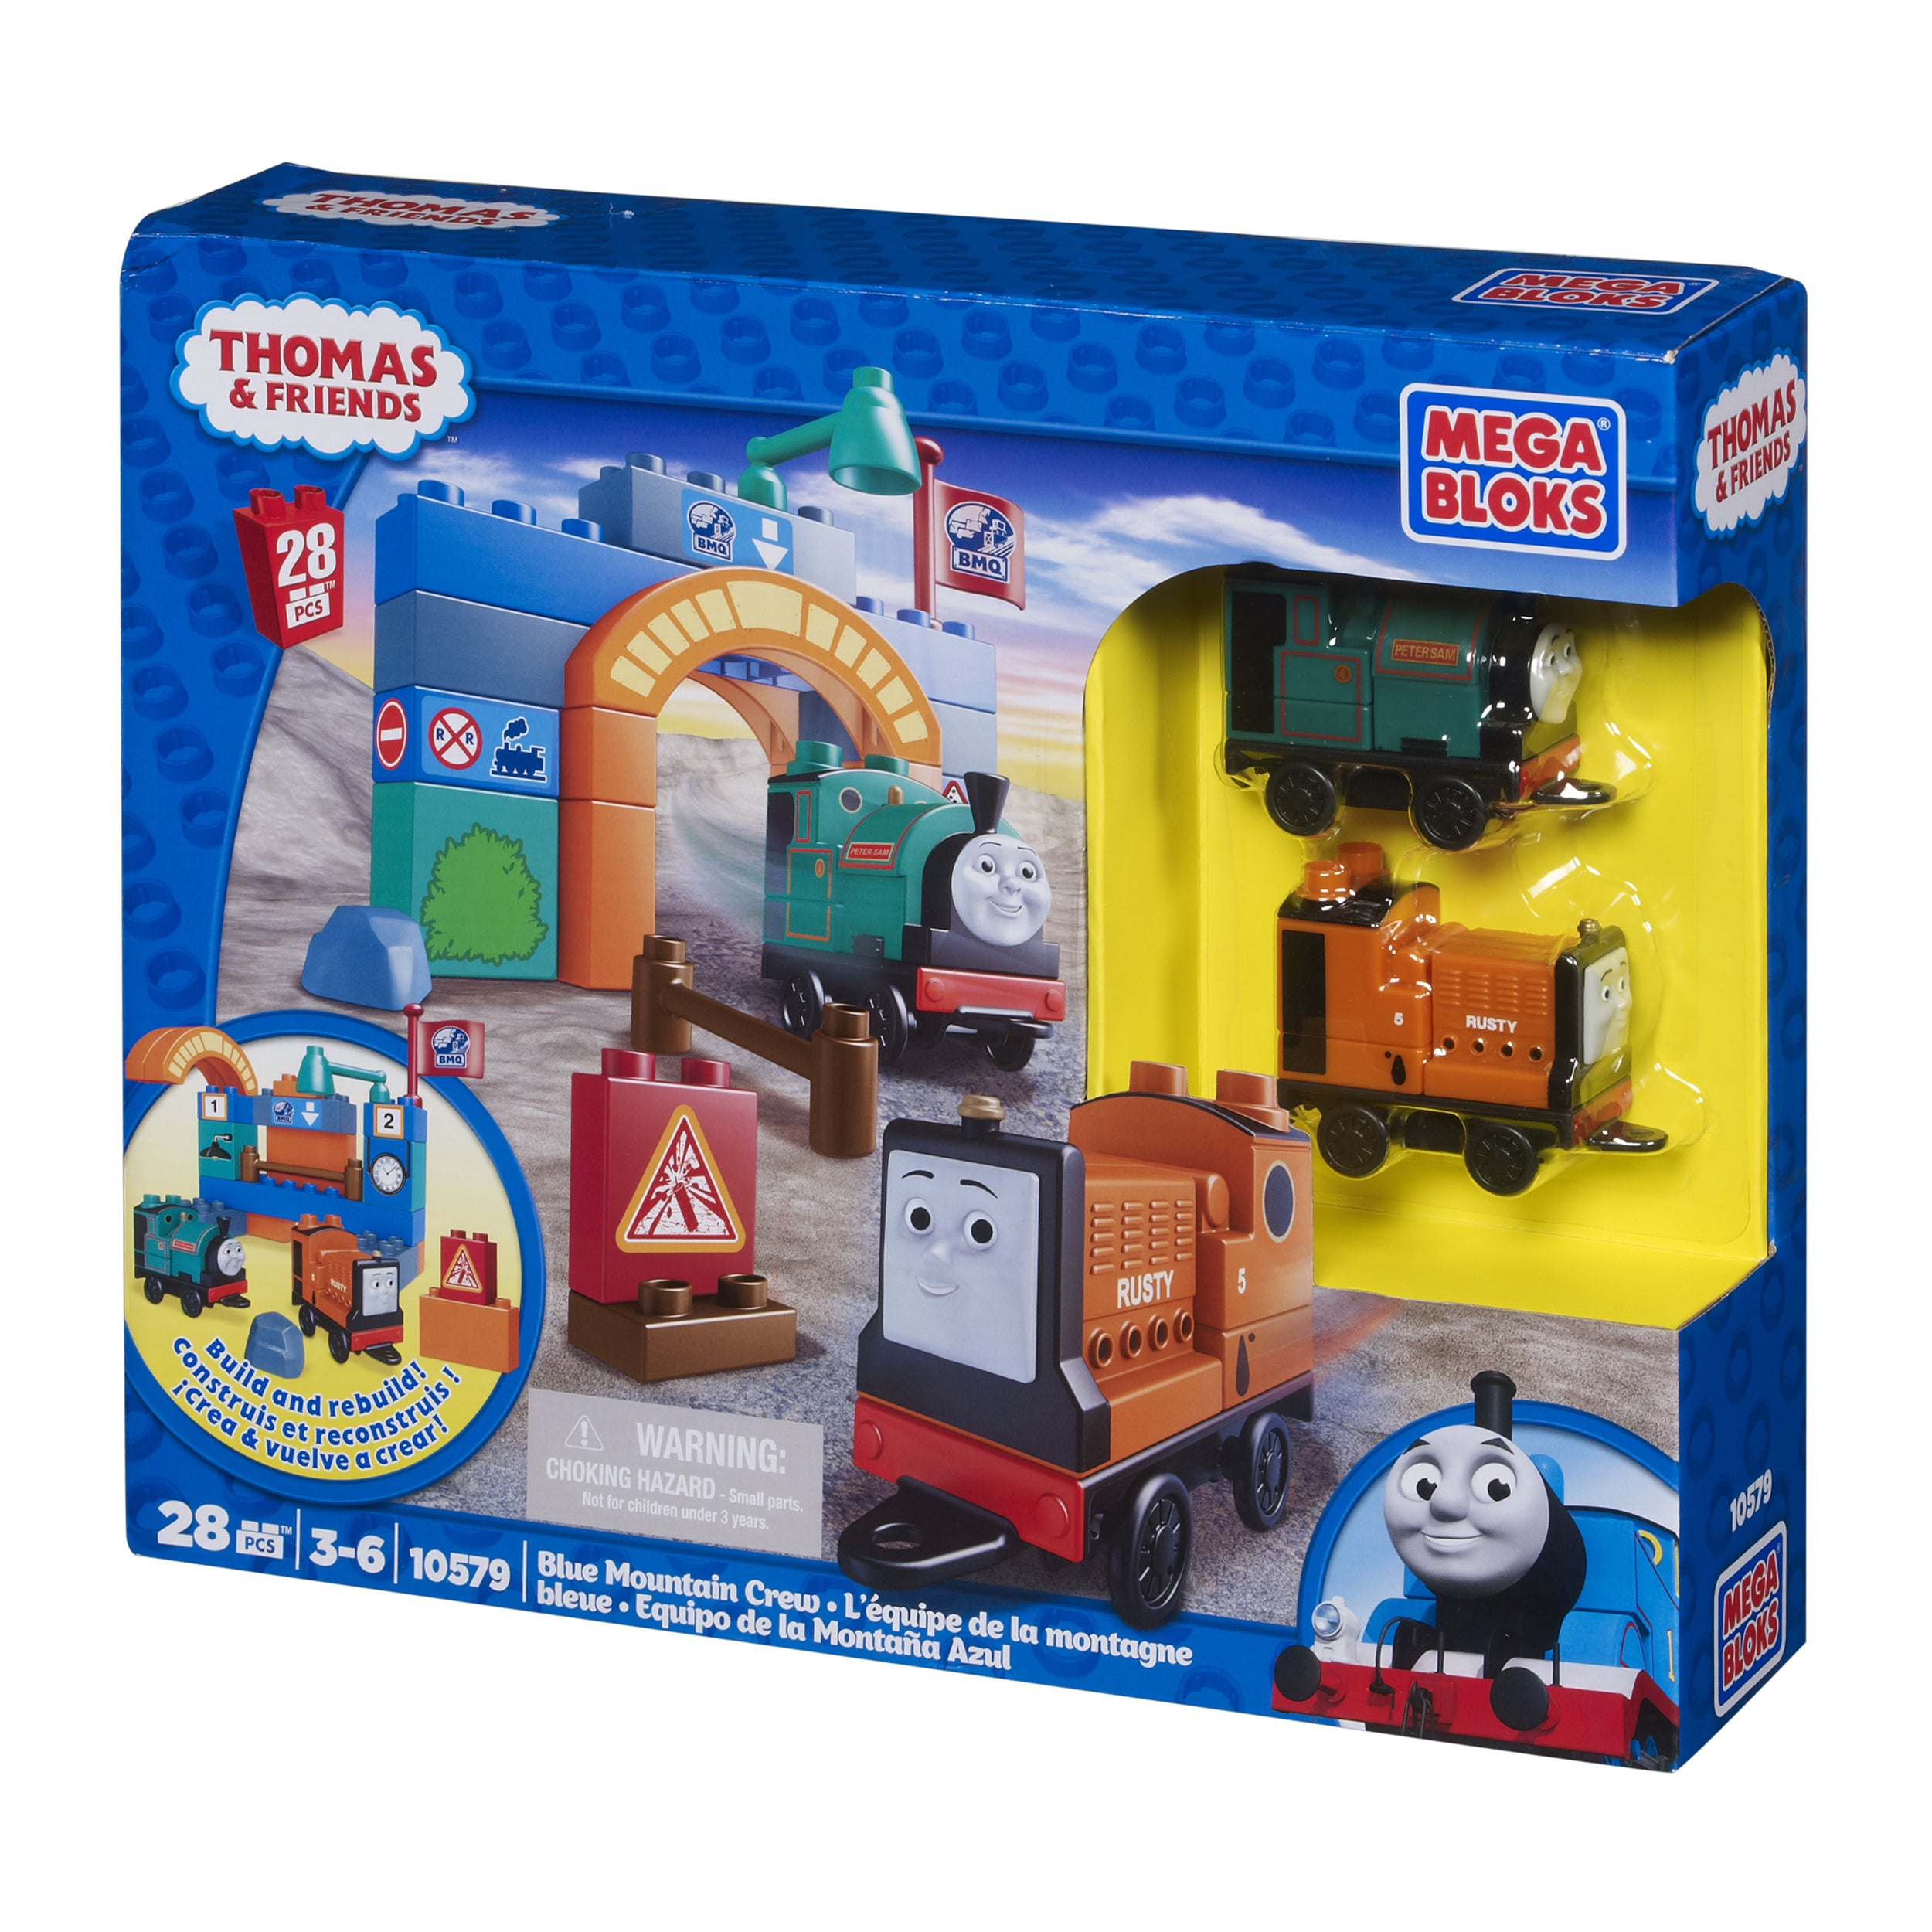 Mega Bloks Thomas and Friends Blue Mountain Crew Playset